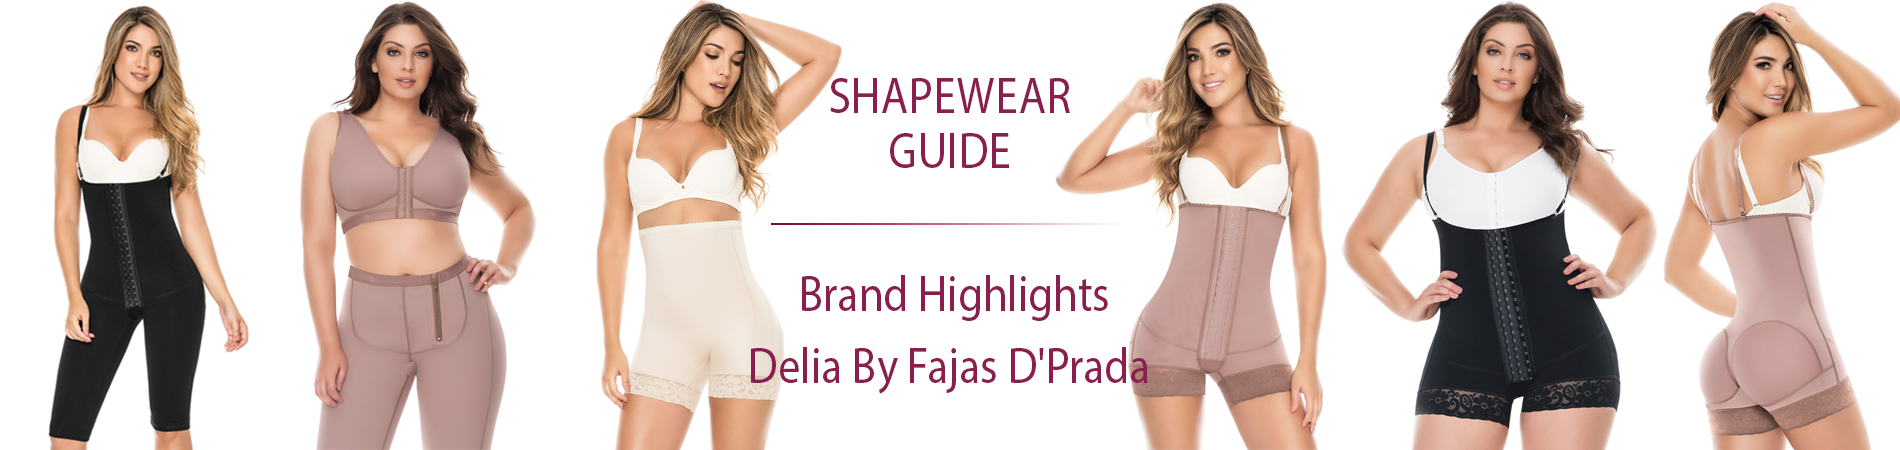 Brand Highlights - Delie by Fajas D'Prada